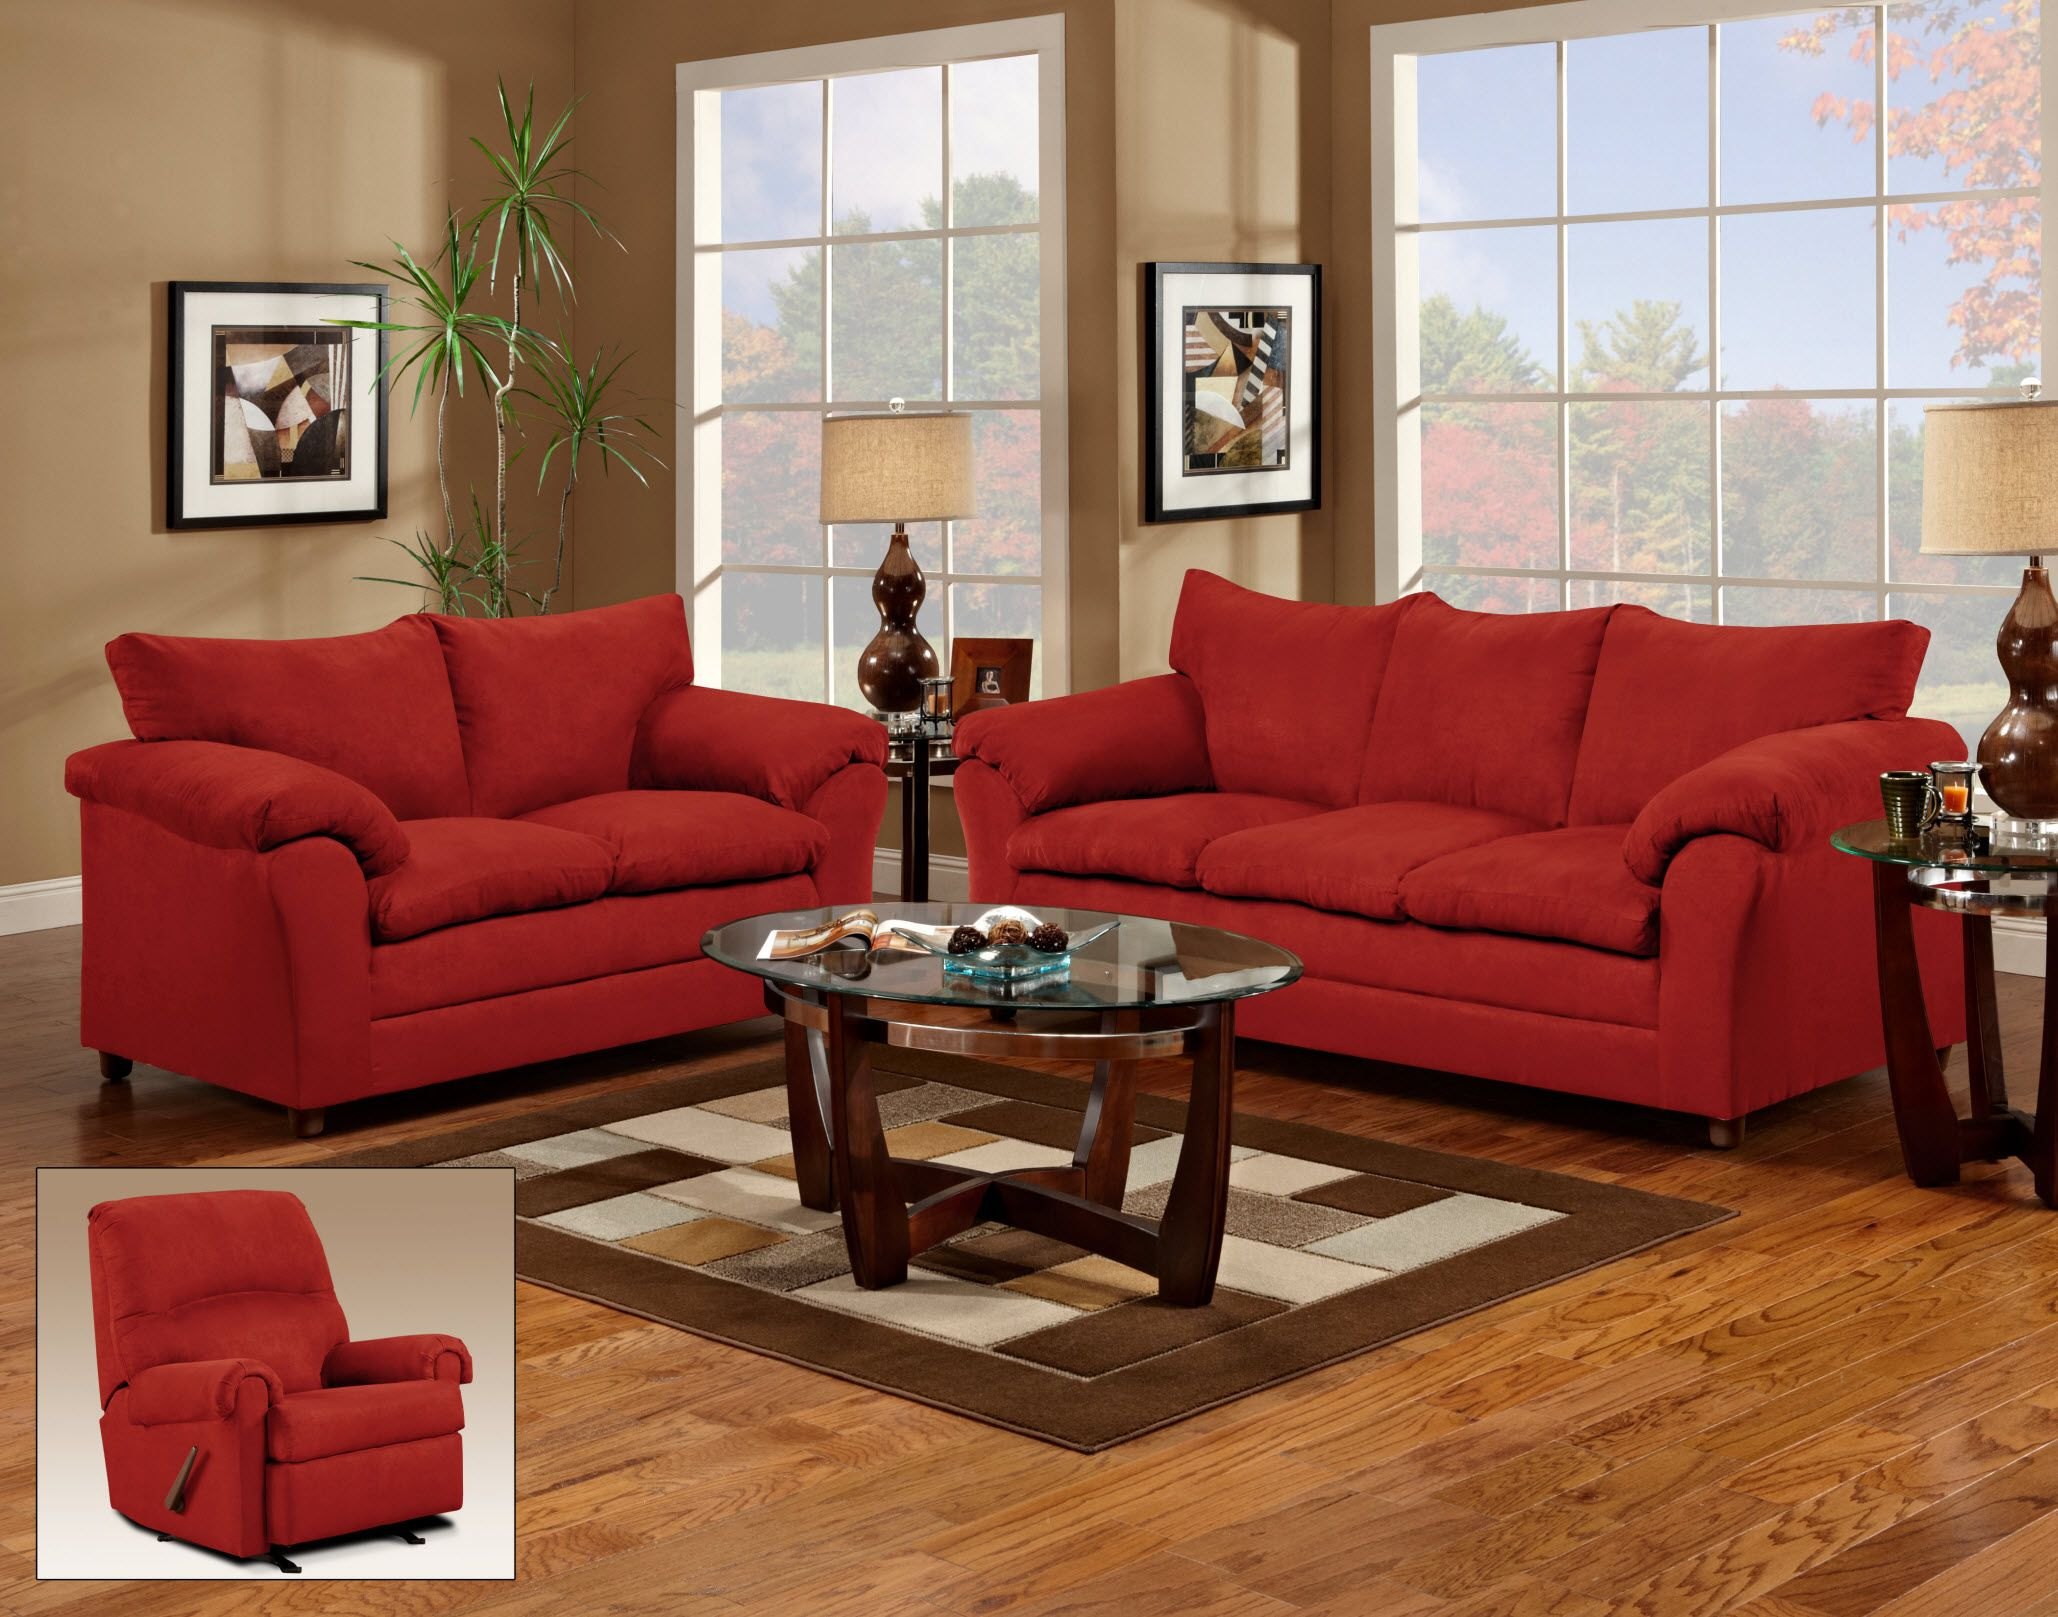 Red Couch And Loveseat Living Room For The Home Pinterest Living Room